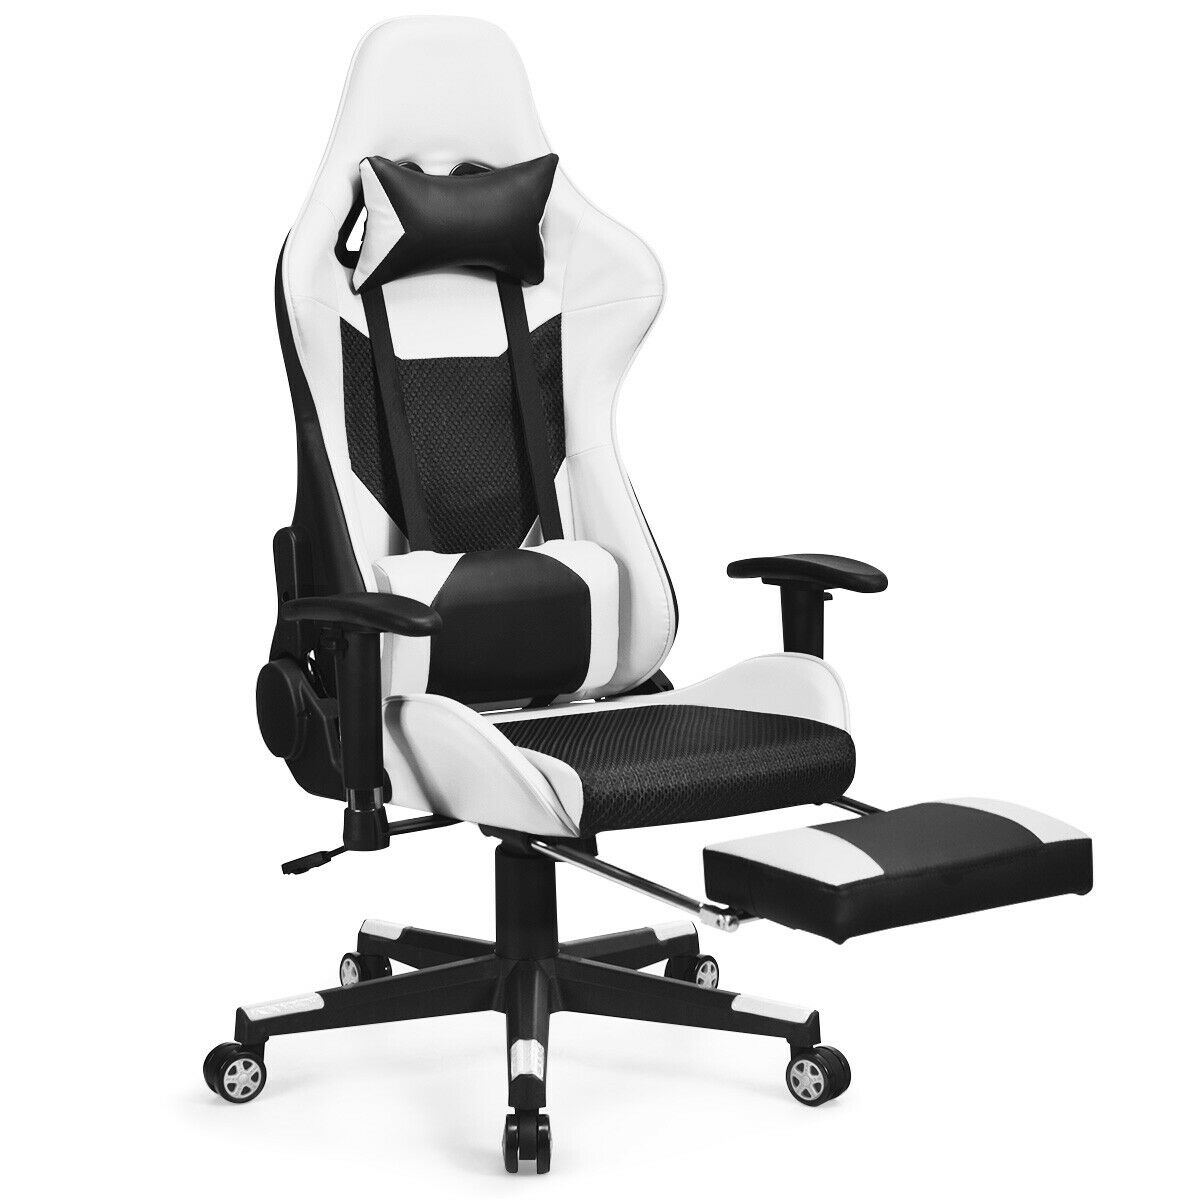 High Back Massage Seat Gaming Chair Recliner Home& Office Footrest White